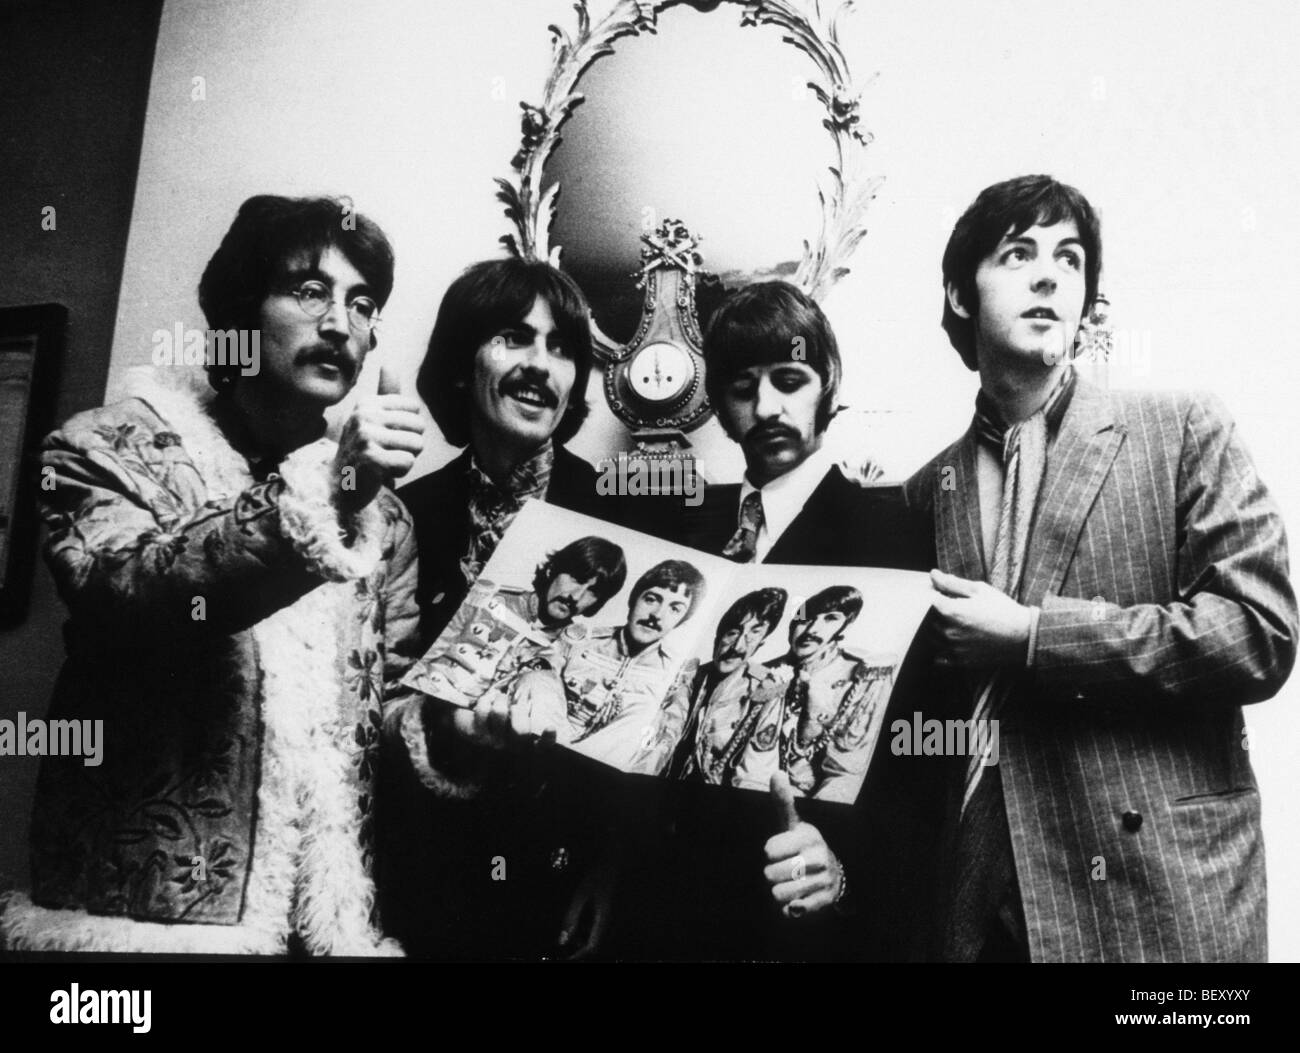 L'beatles George Harrison, John Lennon, paul mccartney, Ringo Starr' Photo Stock